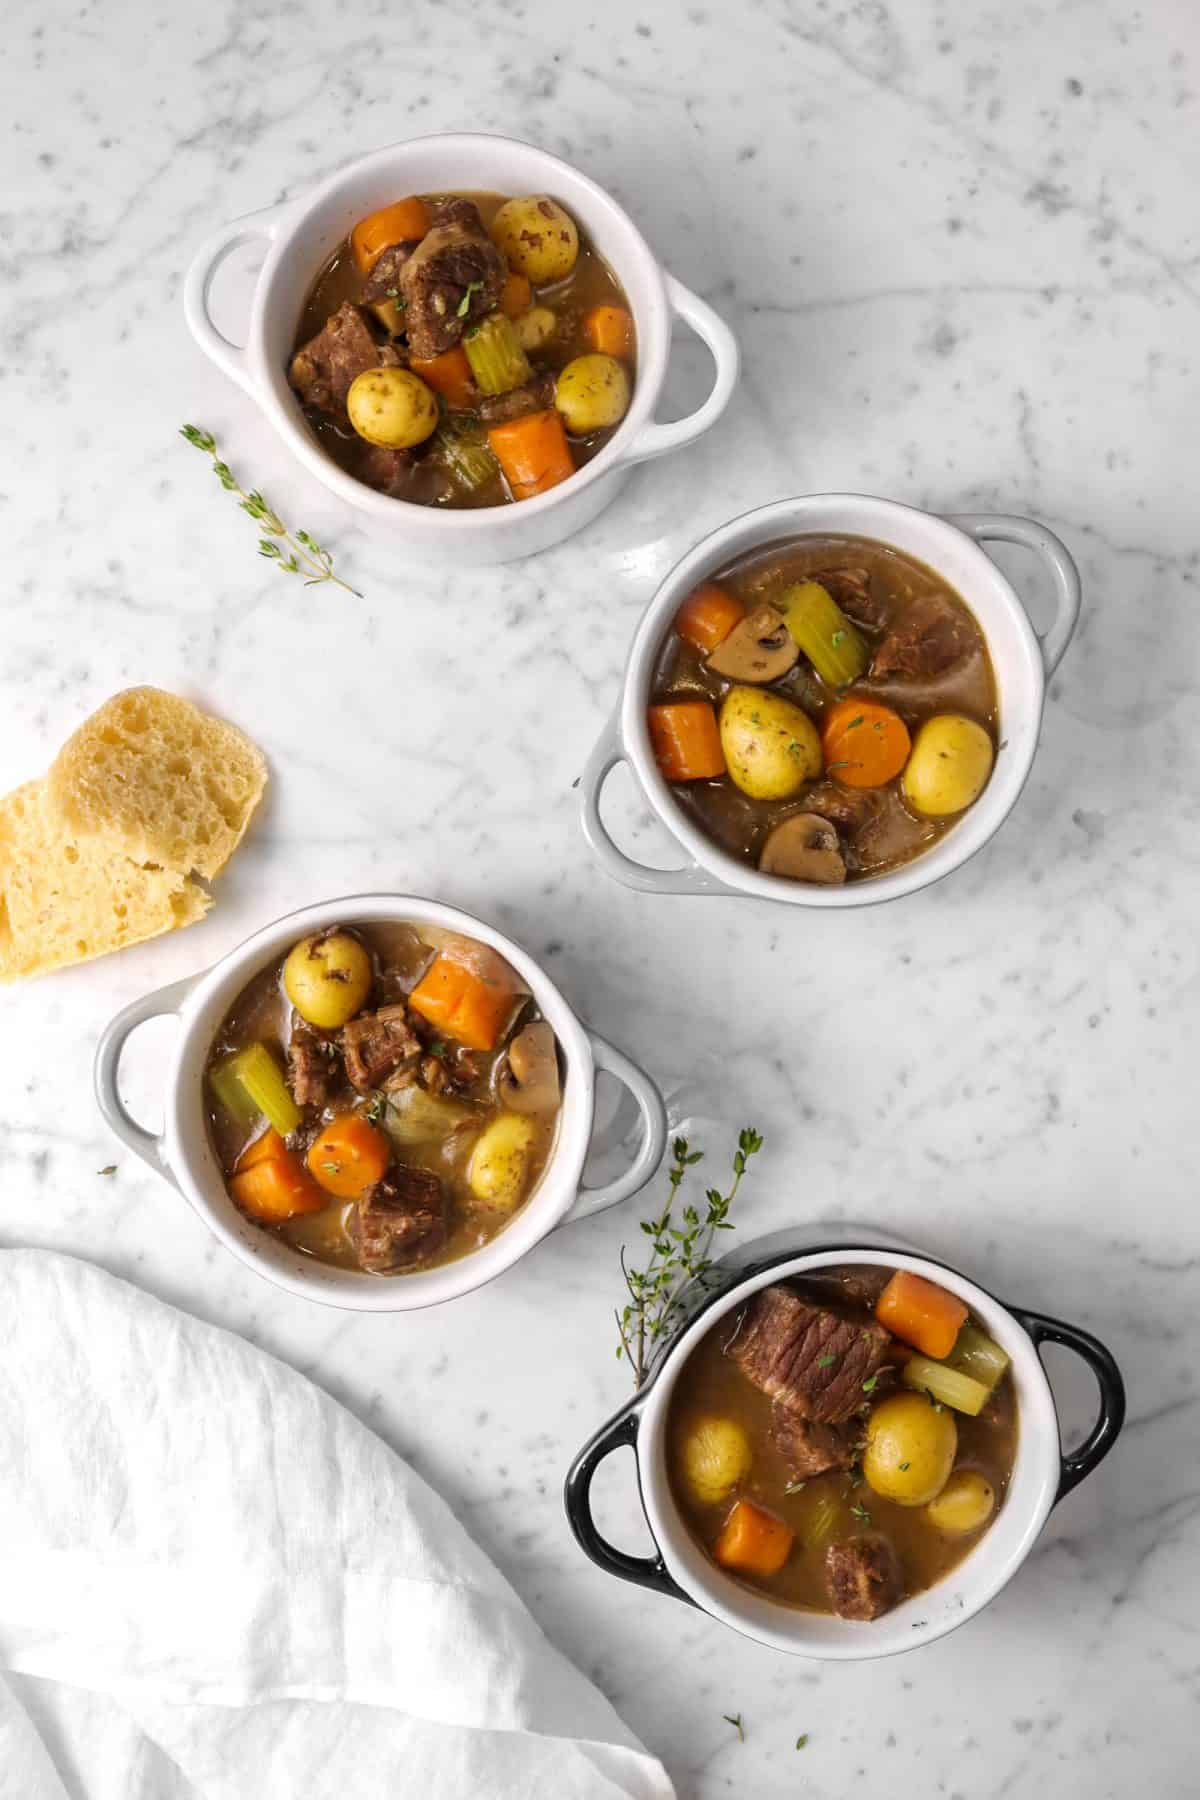 four cocottes of beef stew on a marble table with thyme sprigs, bread, and a white napkin